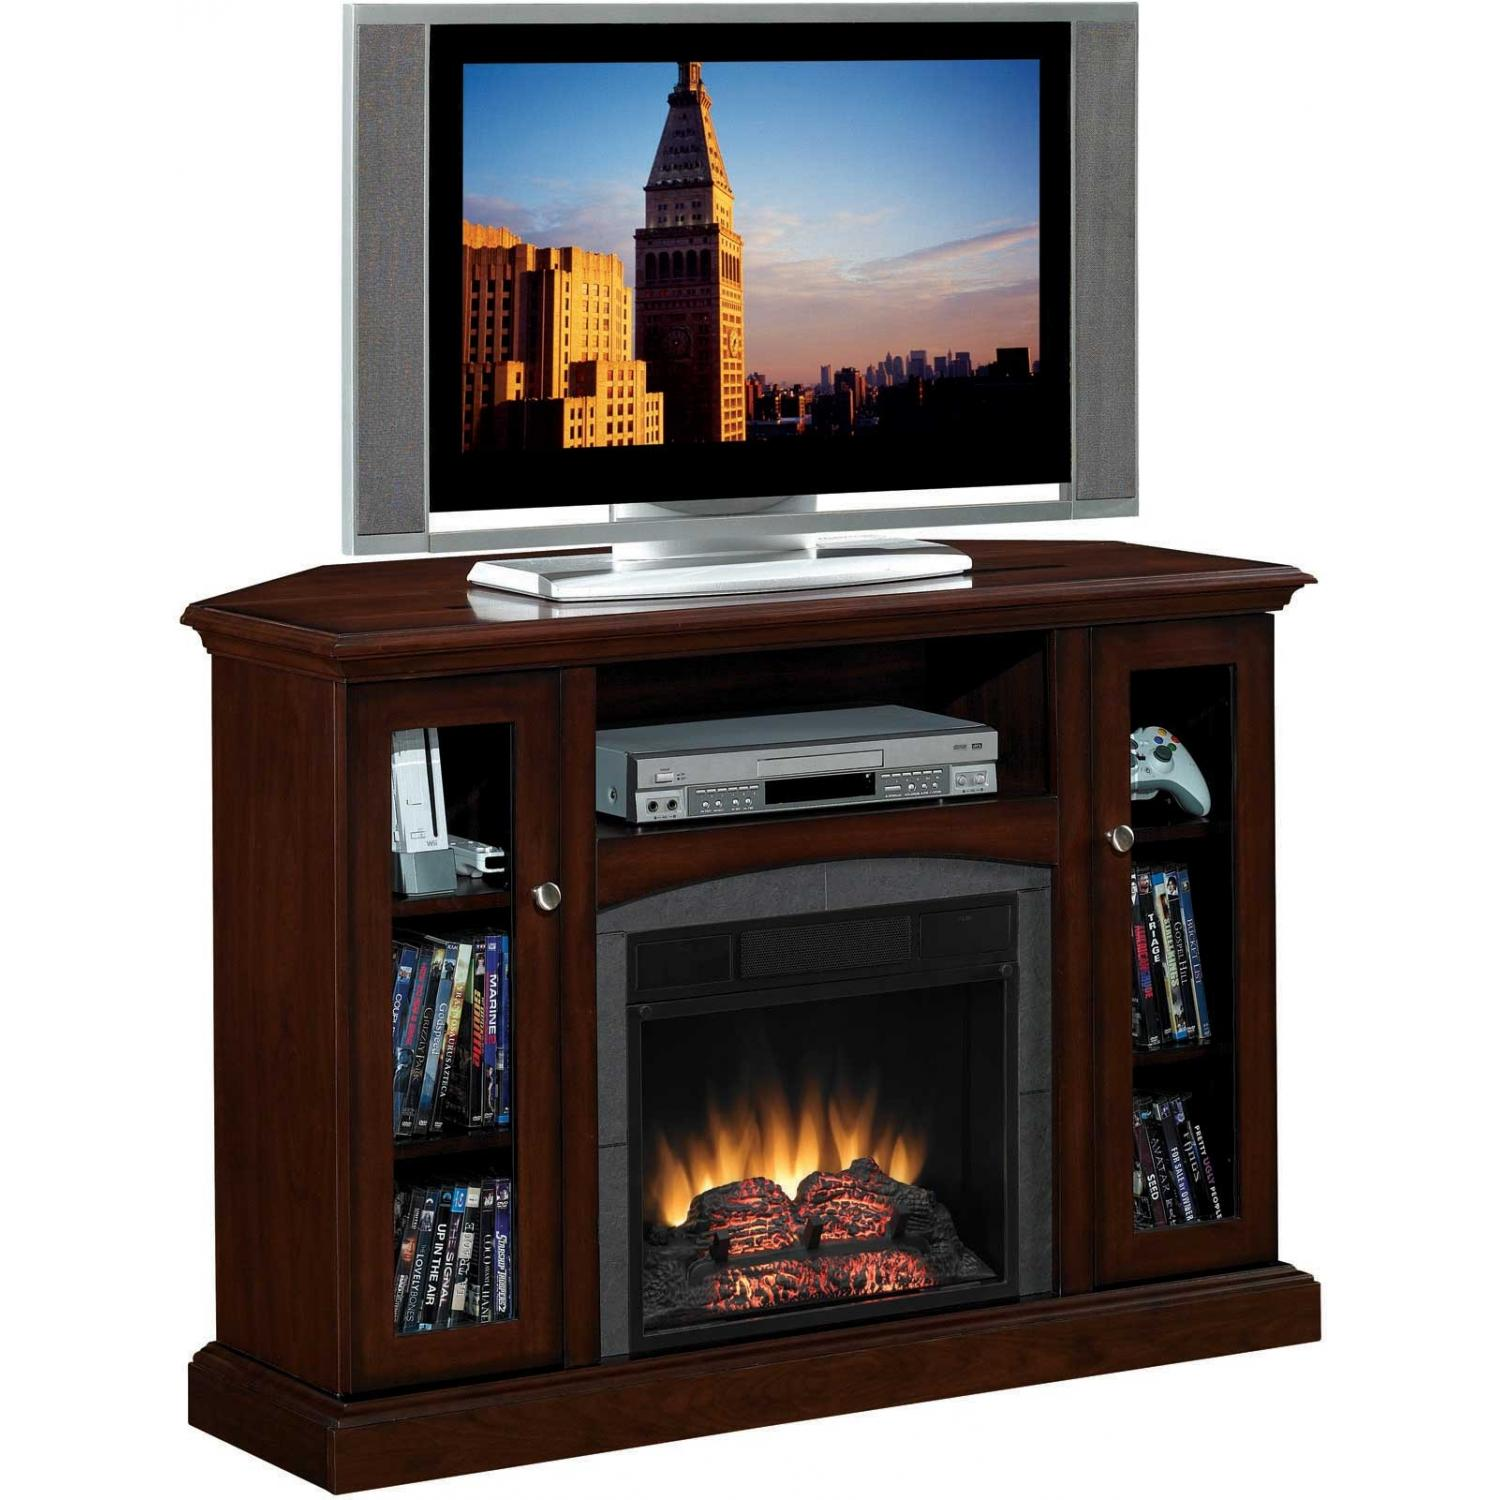 ClassicFlame 18DE9033-PC81 Advantage Bancroft Dual Use Electric Fireplace With Media Console - Engineered Antique Cherry